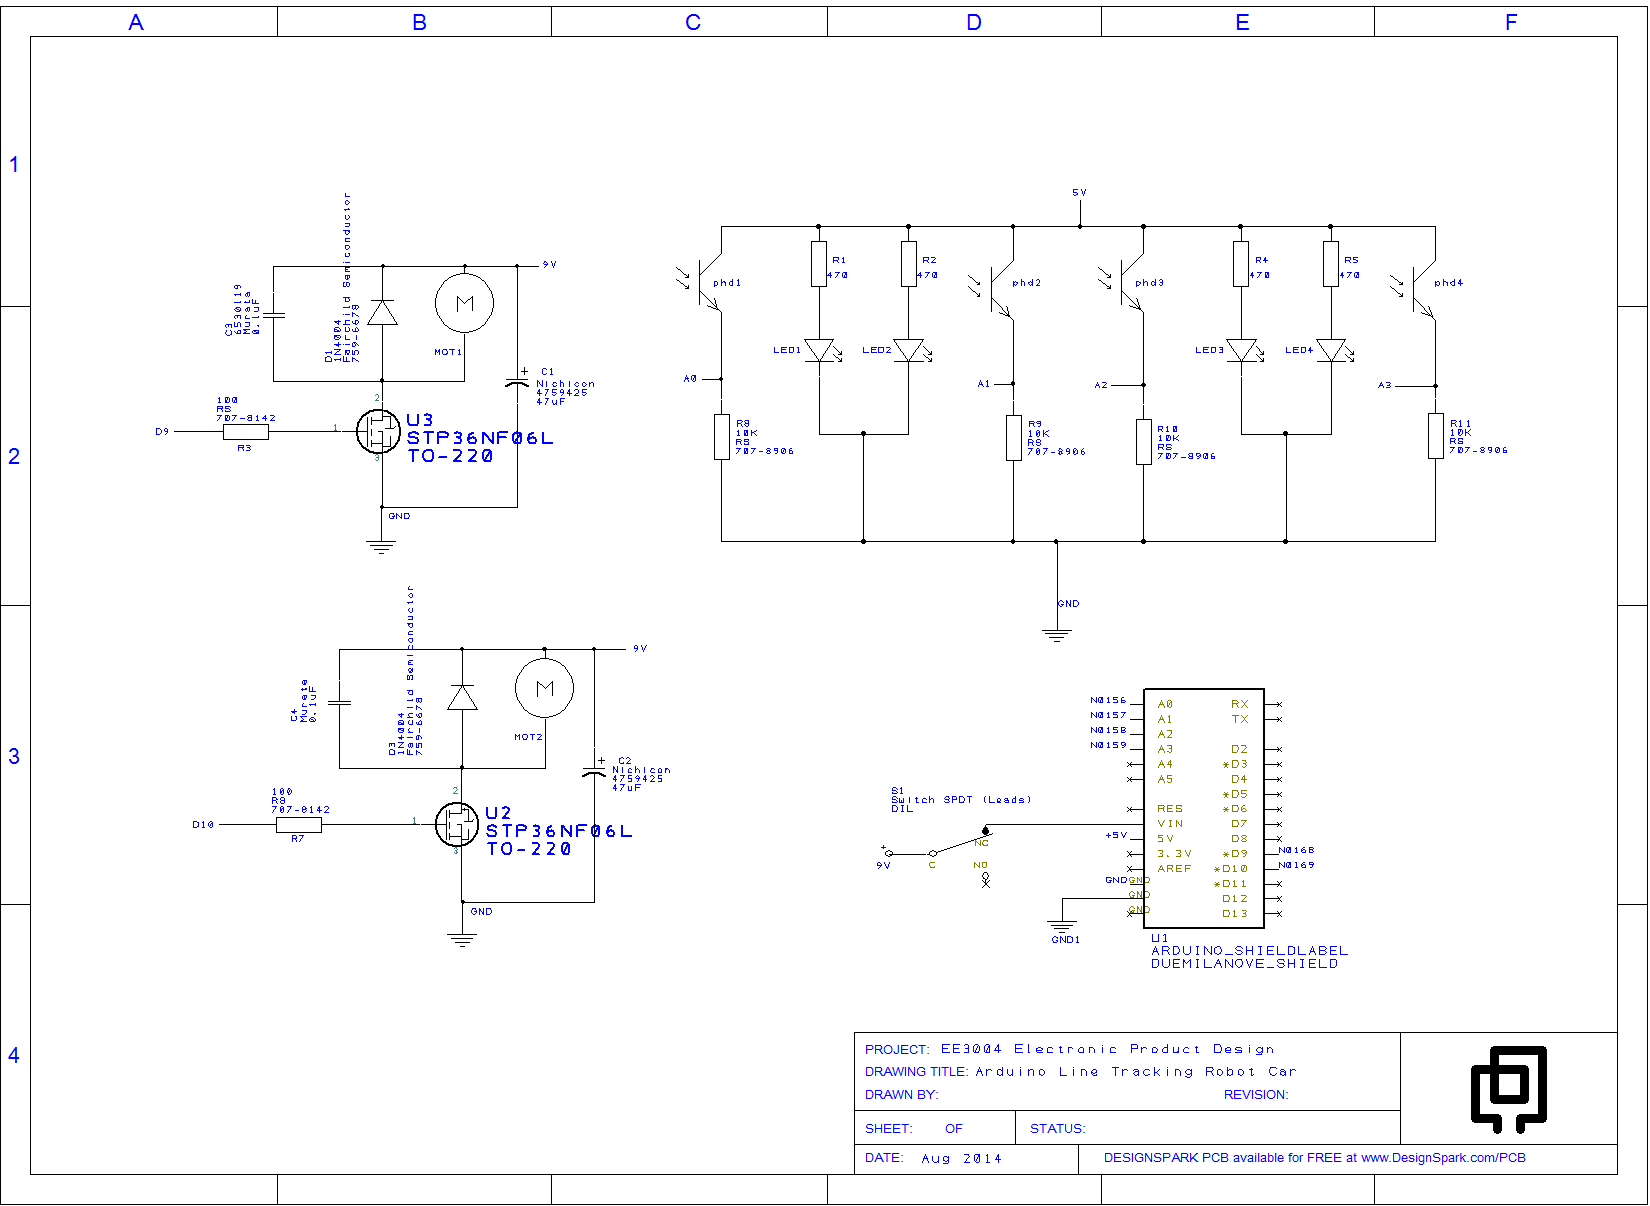 schematic- Arduino Line Tracking Robot Car